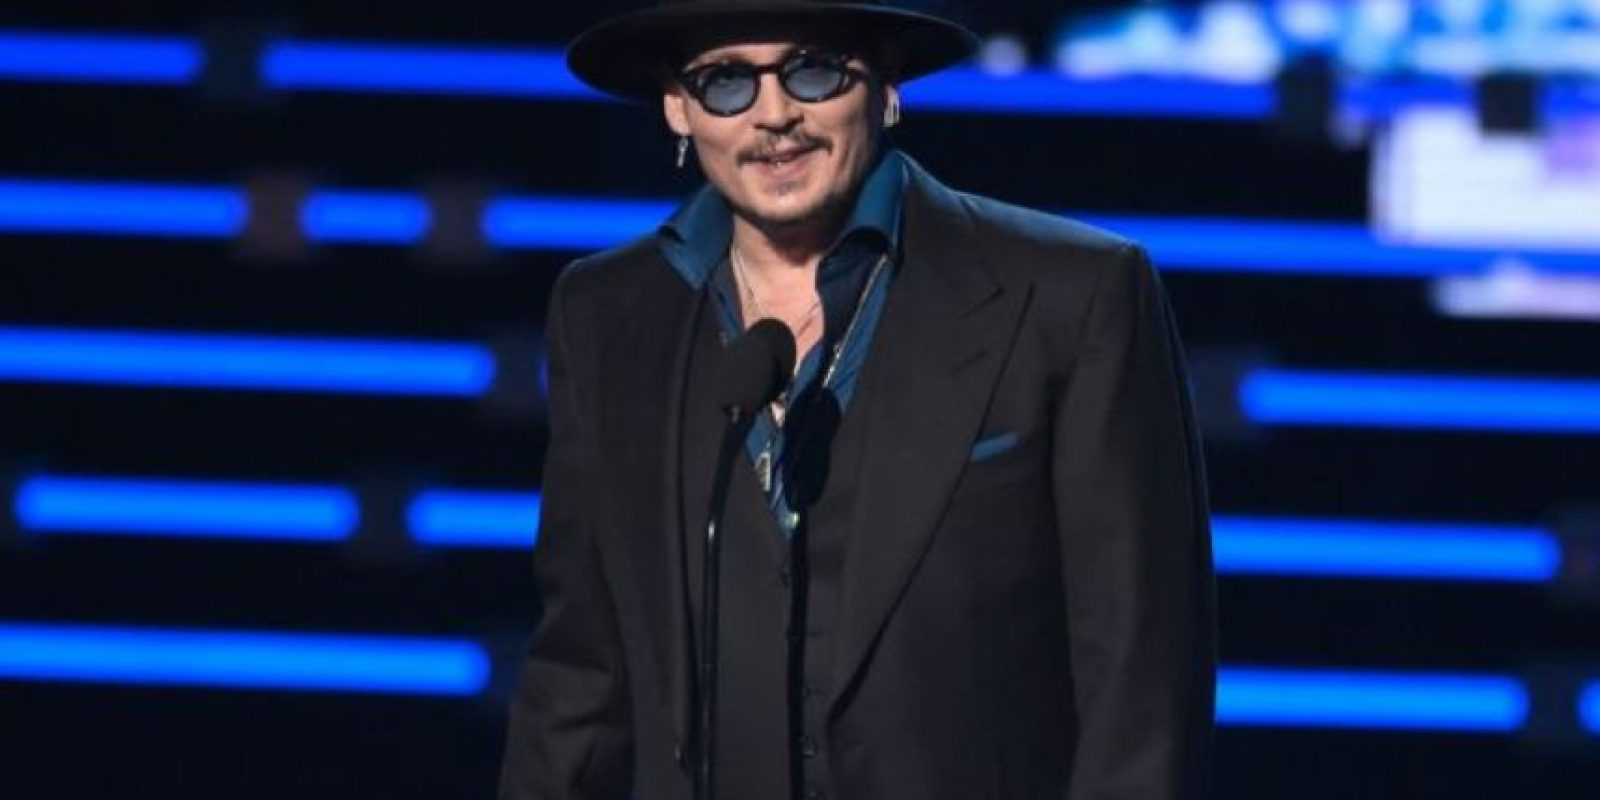 Johnny Depp también sigue estando vigente. Foto: vía Getty Images